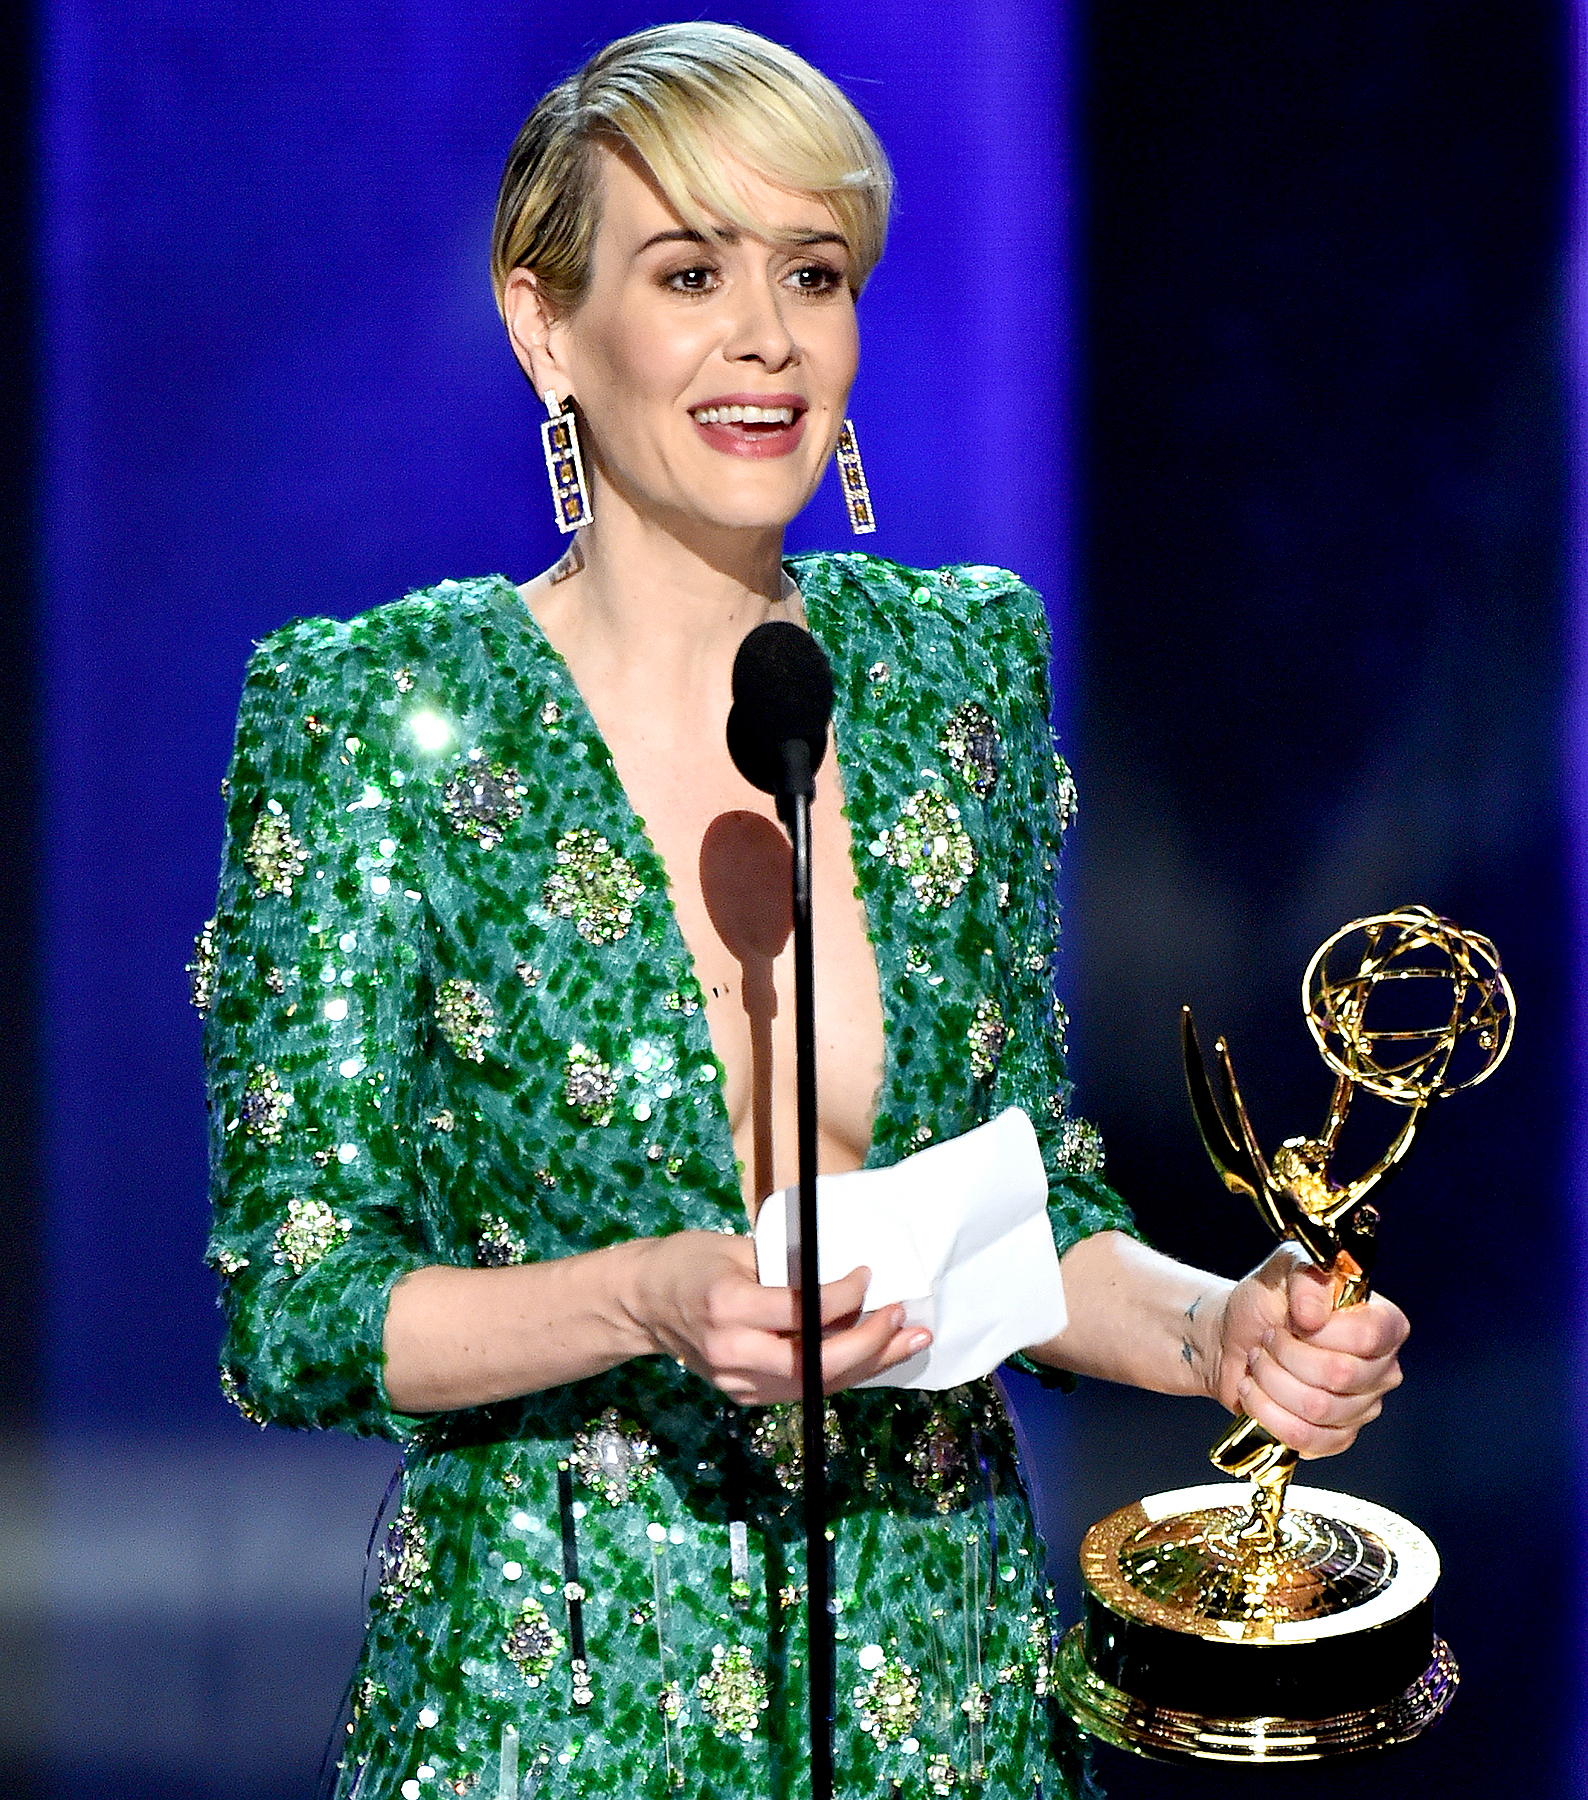 Sarah Paulson accepts the award for Outstanding Lead Actress in a Limited Series or a Movie for 'The People v. O.J. Simpson: American Crime Story' at the 68th annual Primetime Emmy Awards on Sunday, Sept. 18, 2016, at the Microsoft Theater in Los Angeles.